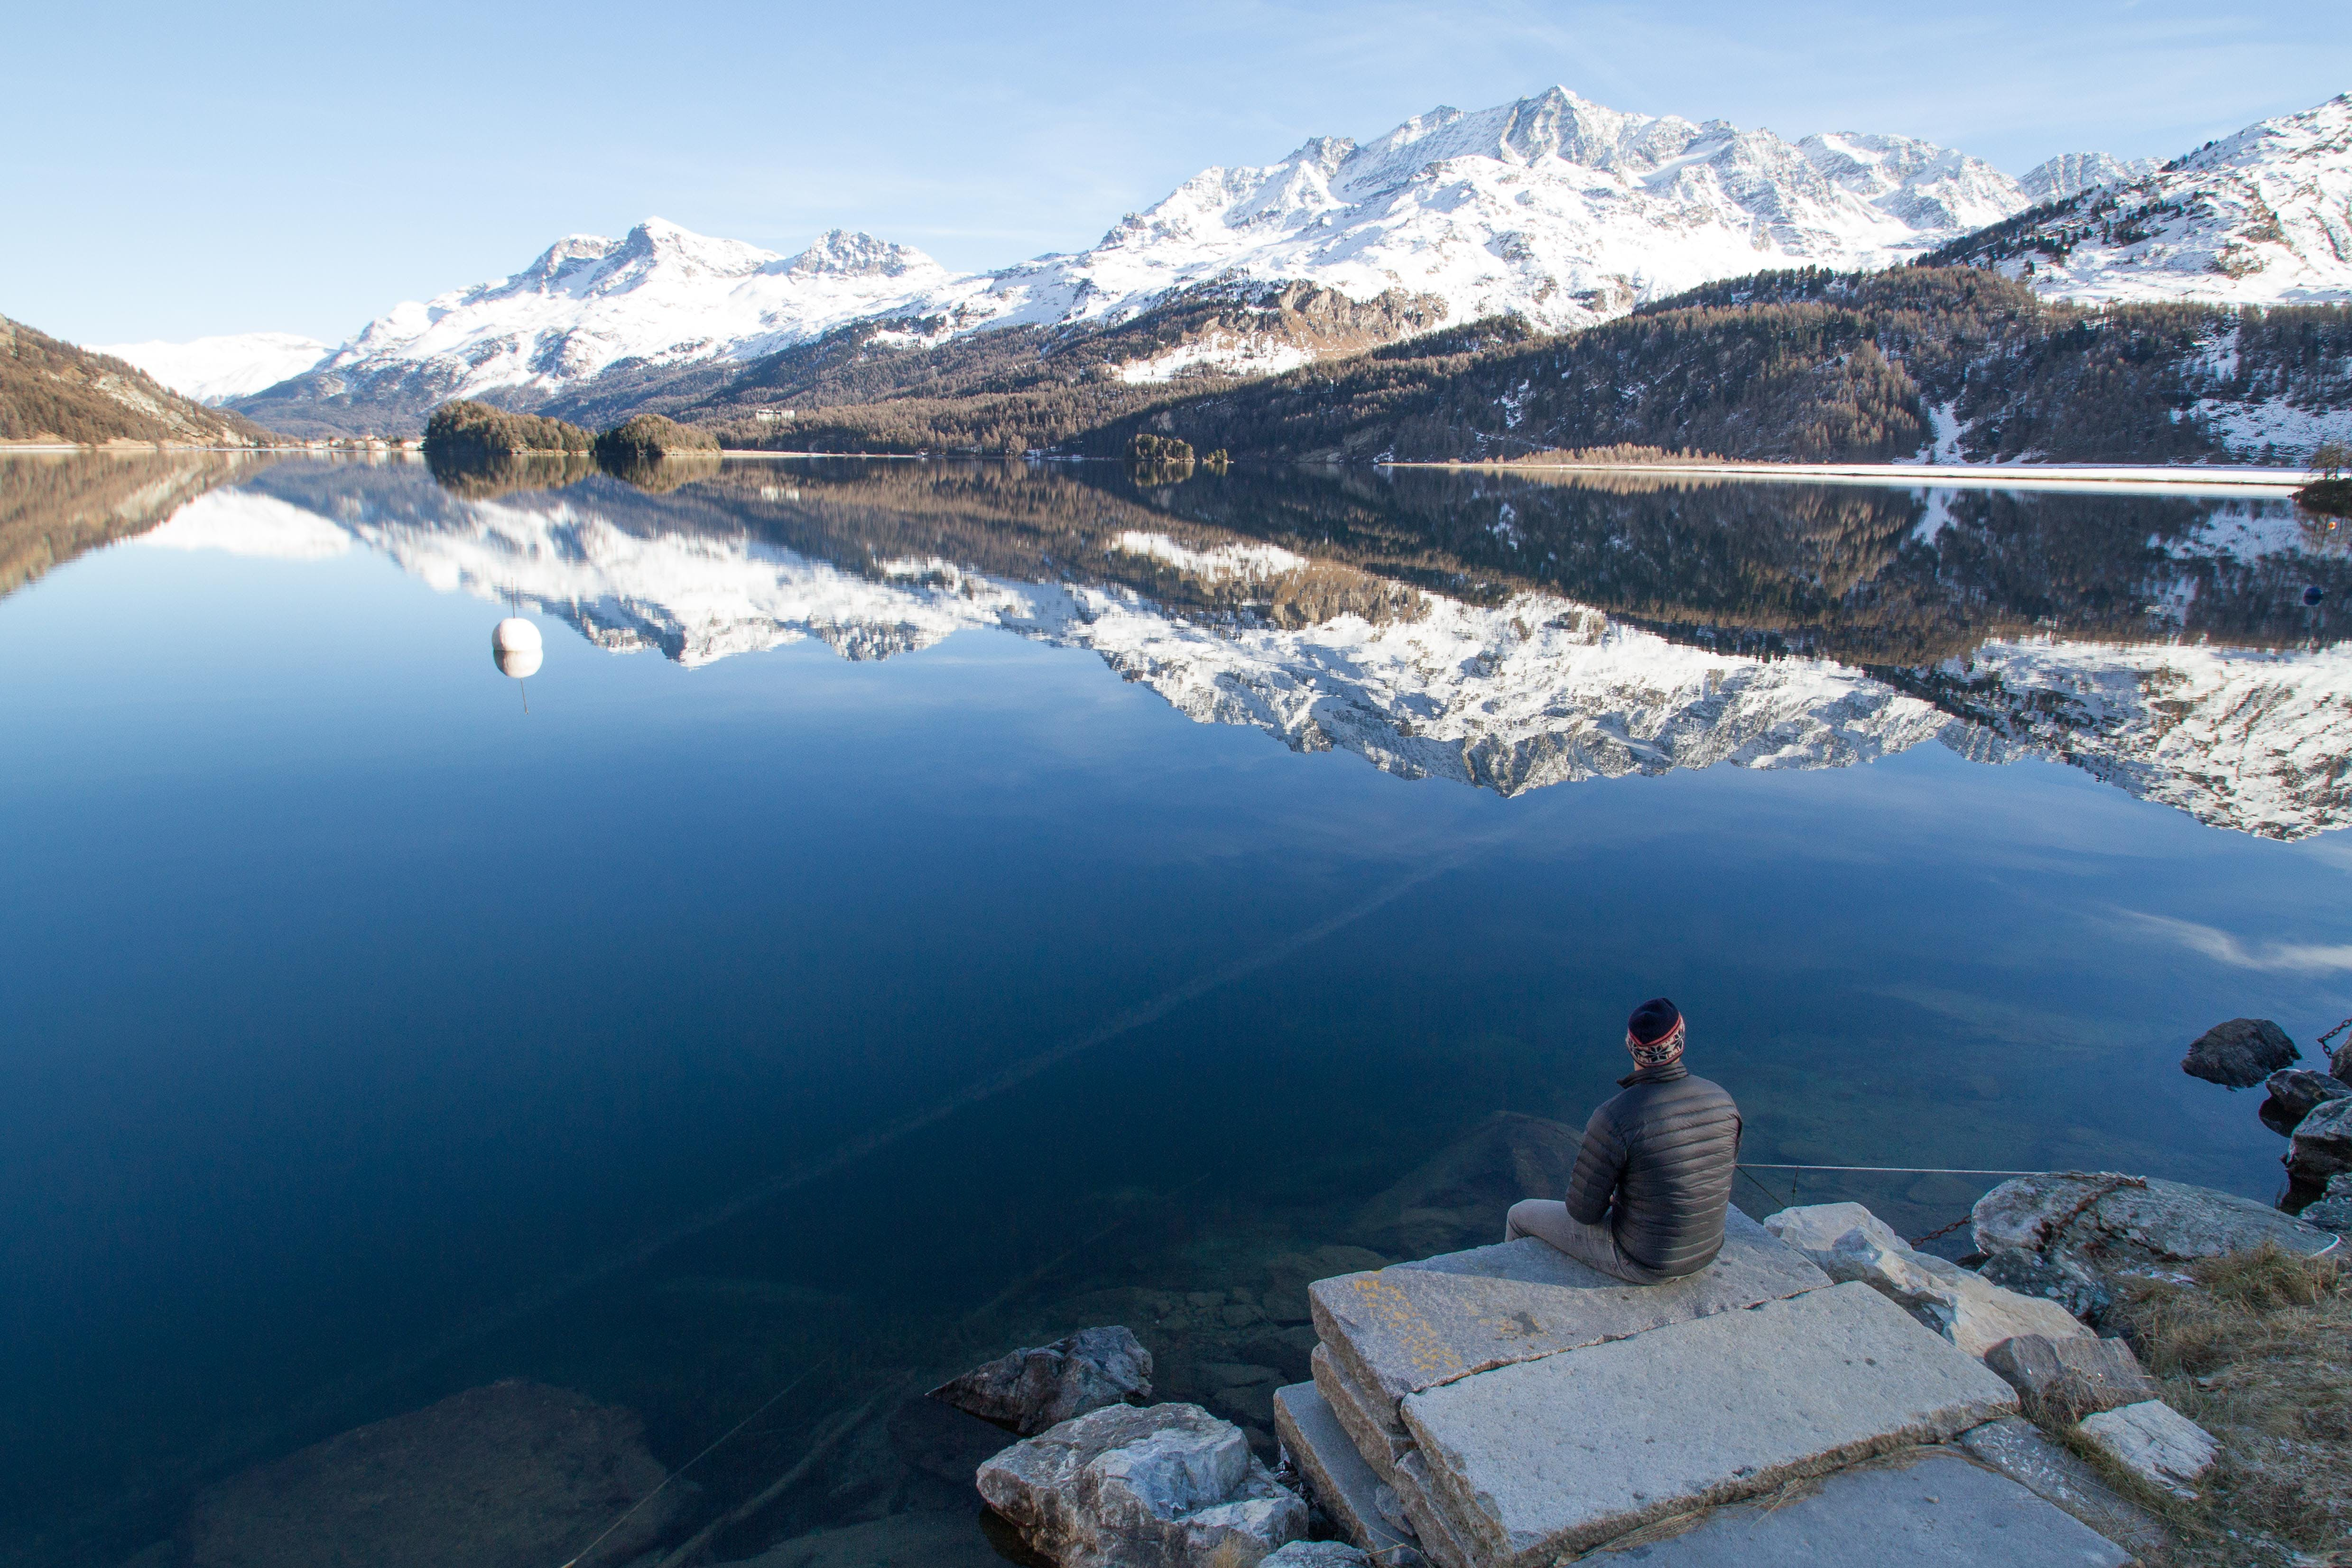 Man Sitting at the Edge of Rock Facing the Lake during Day